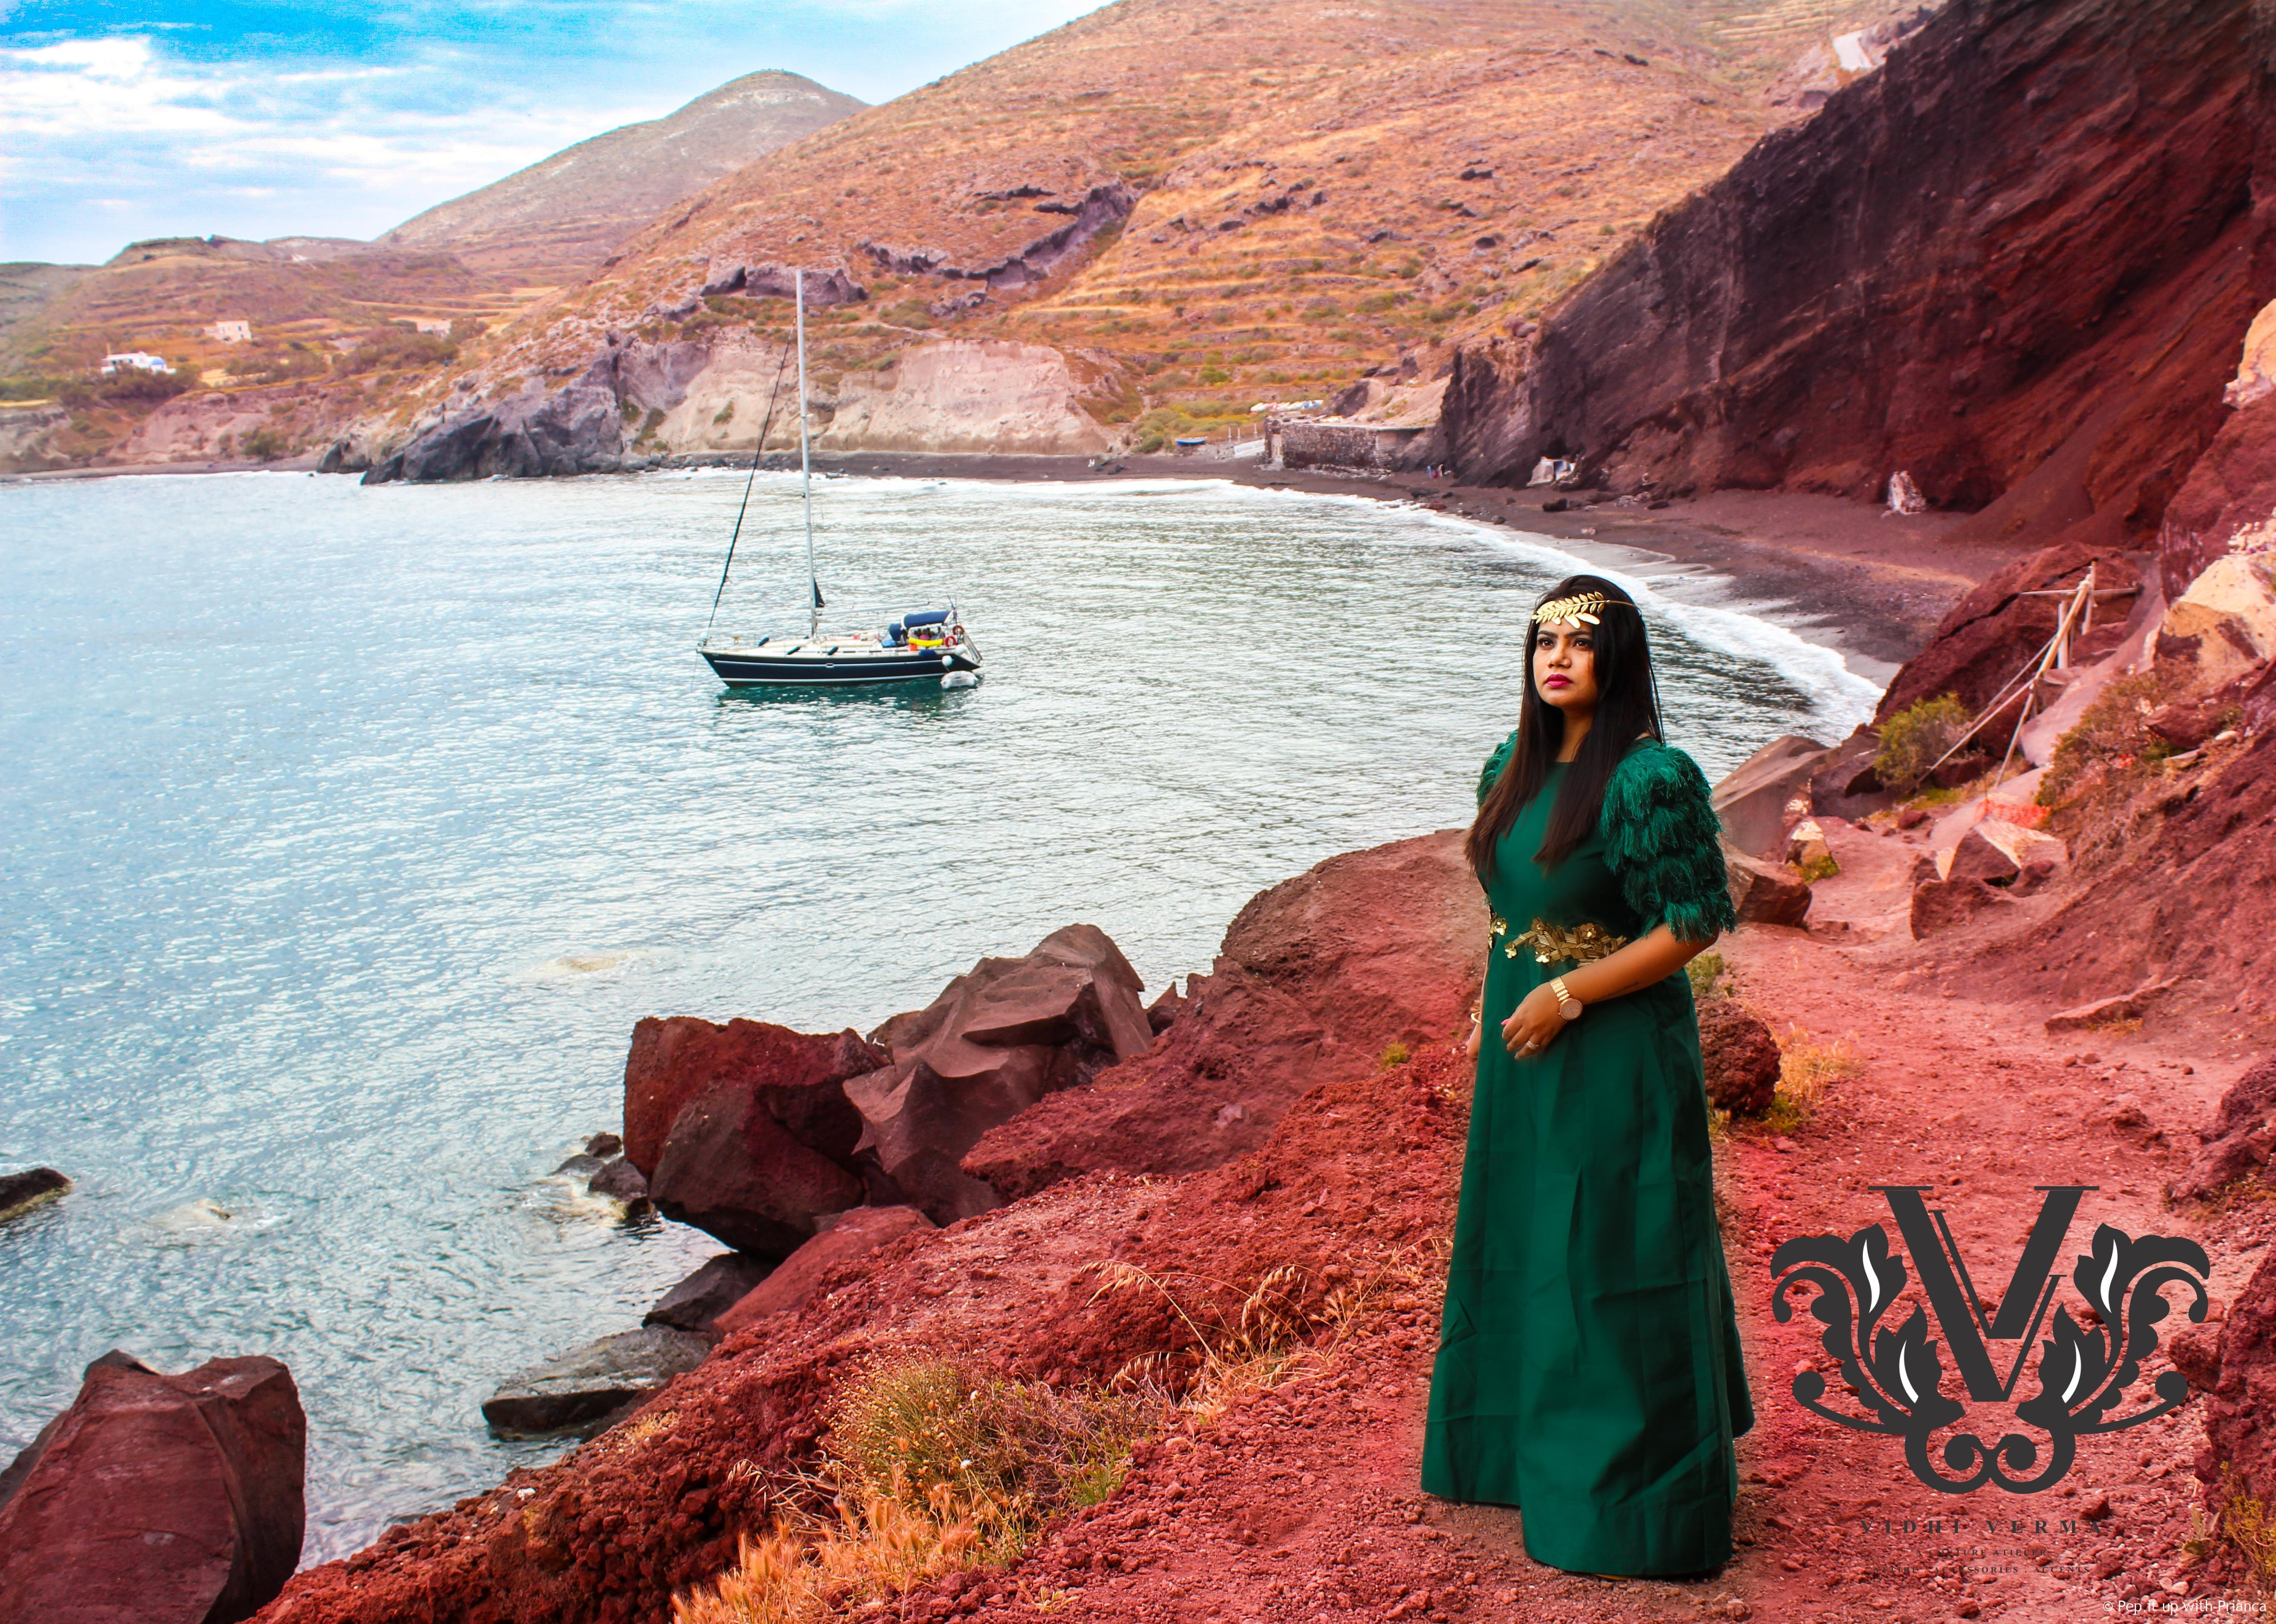 Greece red sea - Exclusive Interview with Celebrity Fashion Designer Vidhi Verma - Get Inspired from her Successful Journey